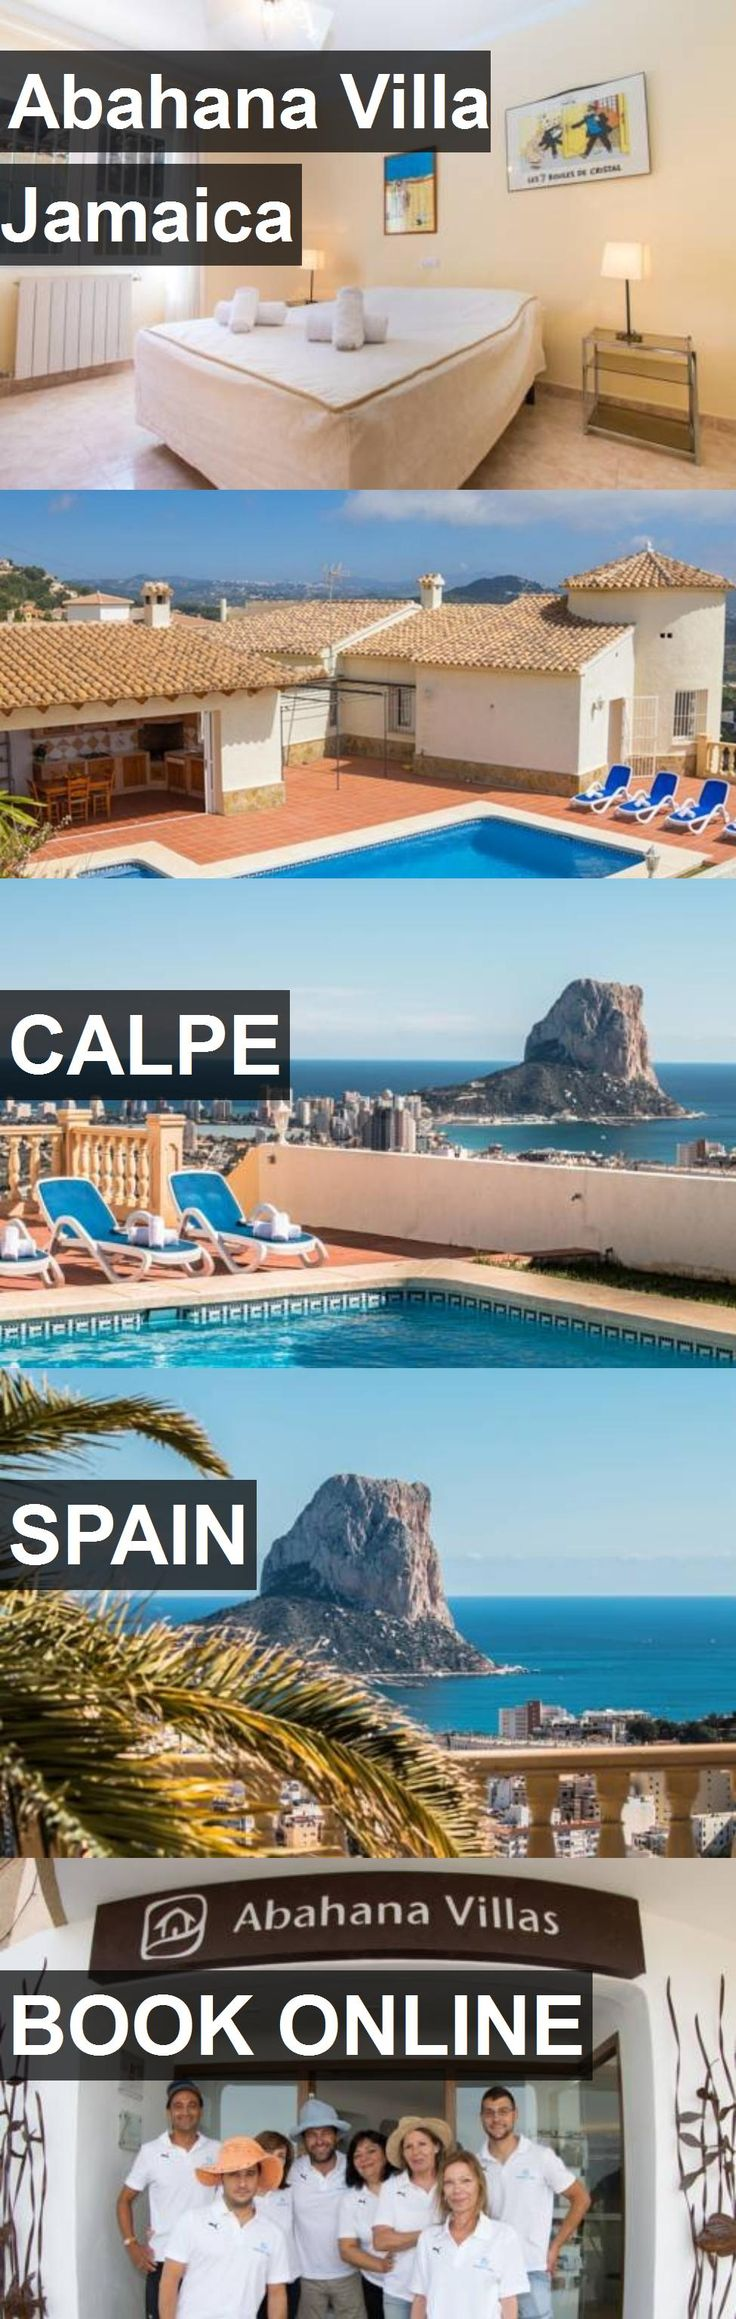 Hotel Abahana Villa Jamaica in Calpe, Spain. For more information, photos, reviews and best prices please follow the link. #Spain #Calpe #travel #vacation #hotel